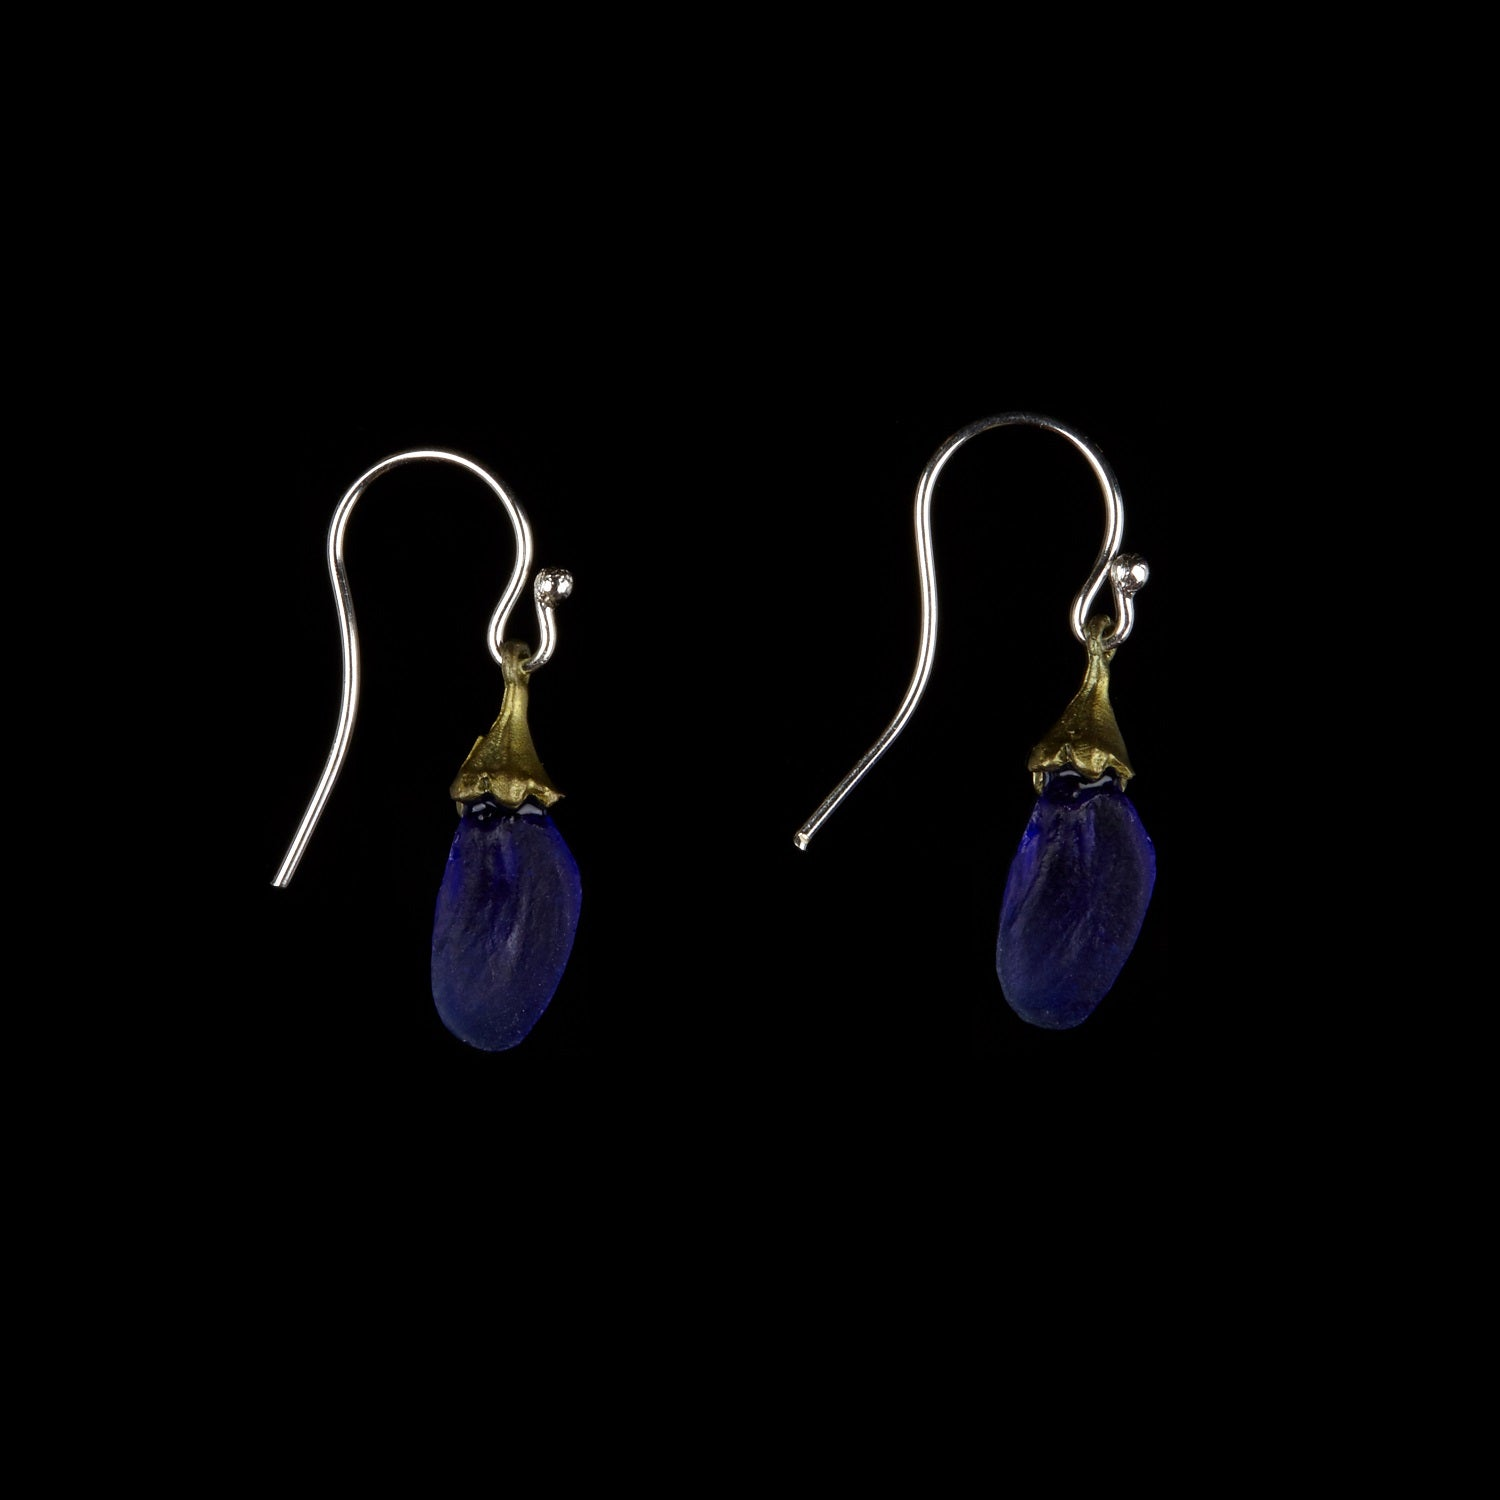 False Indigo Earring - Small Glass Bud Wire